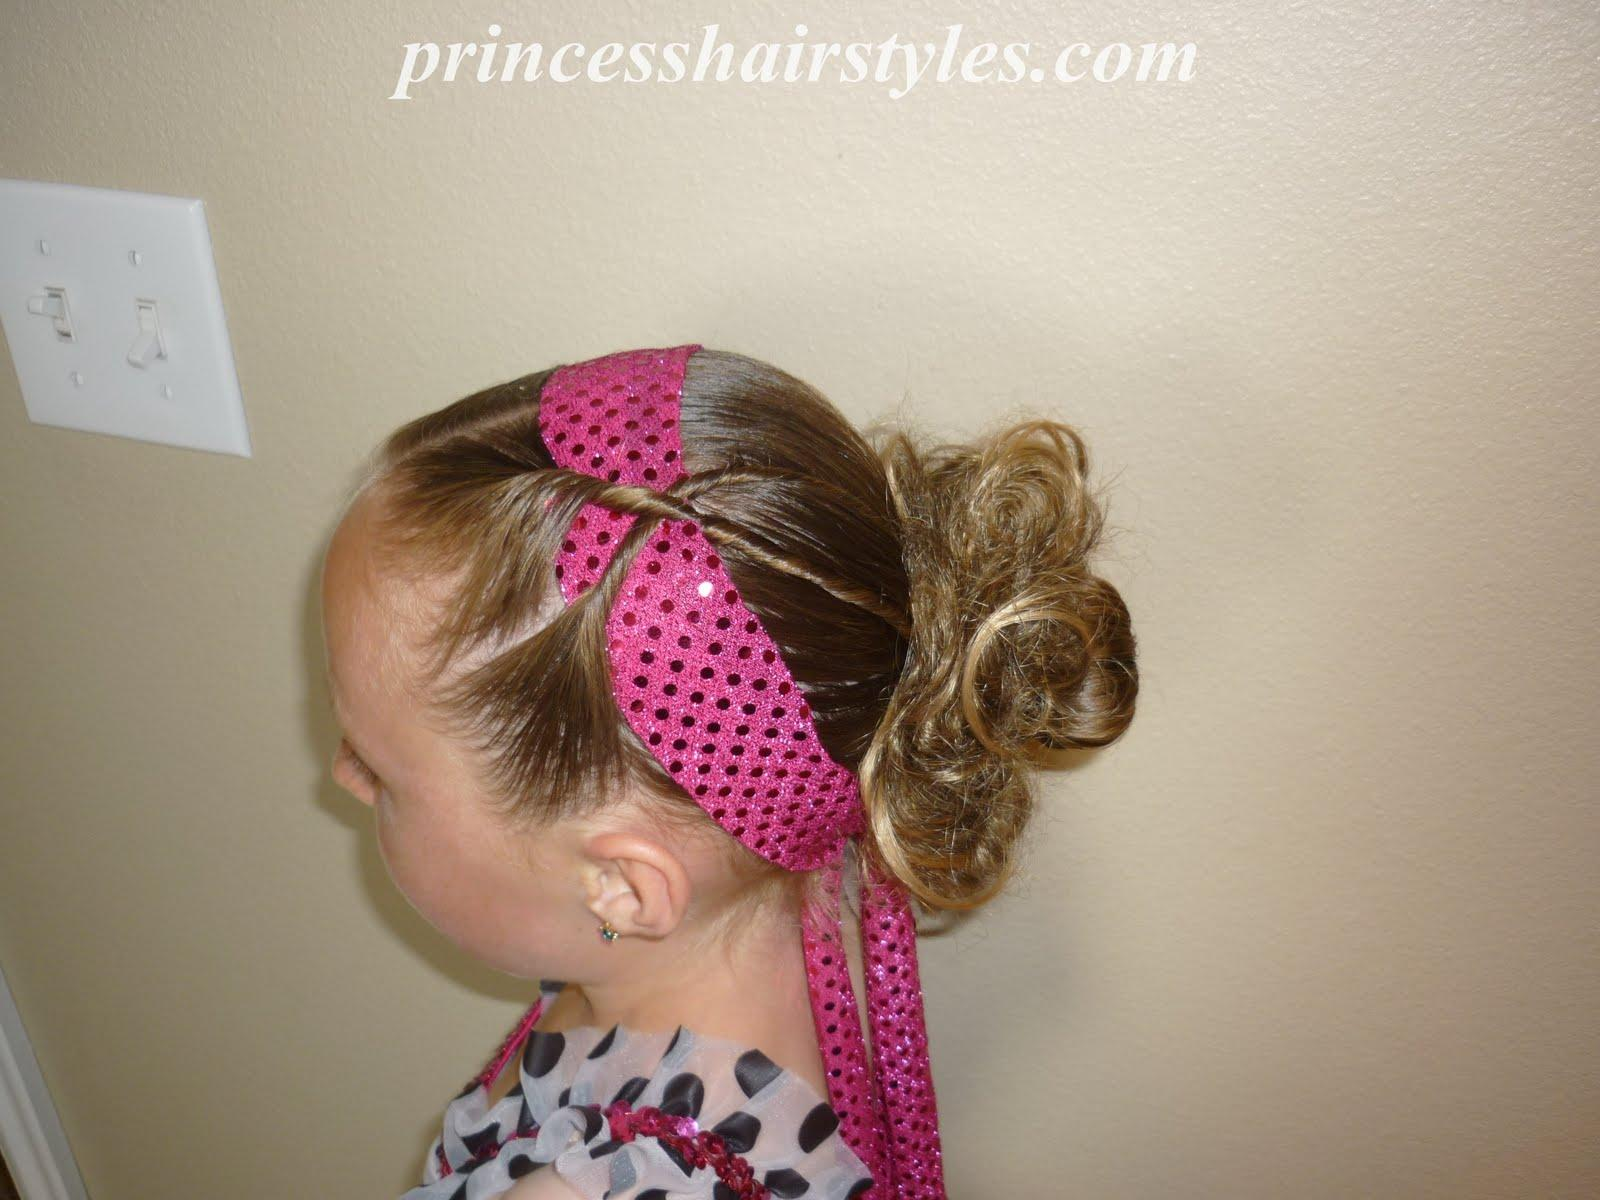 Dance Performance Hairstyles For Girls